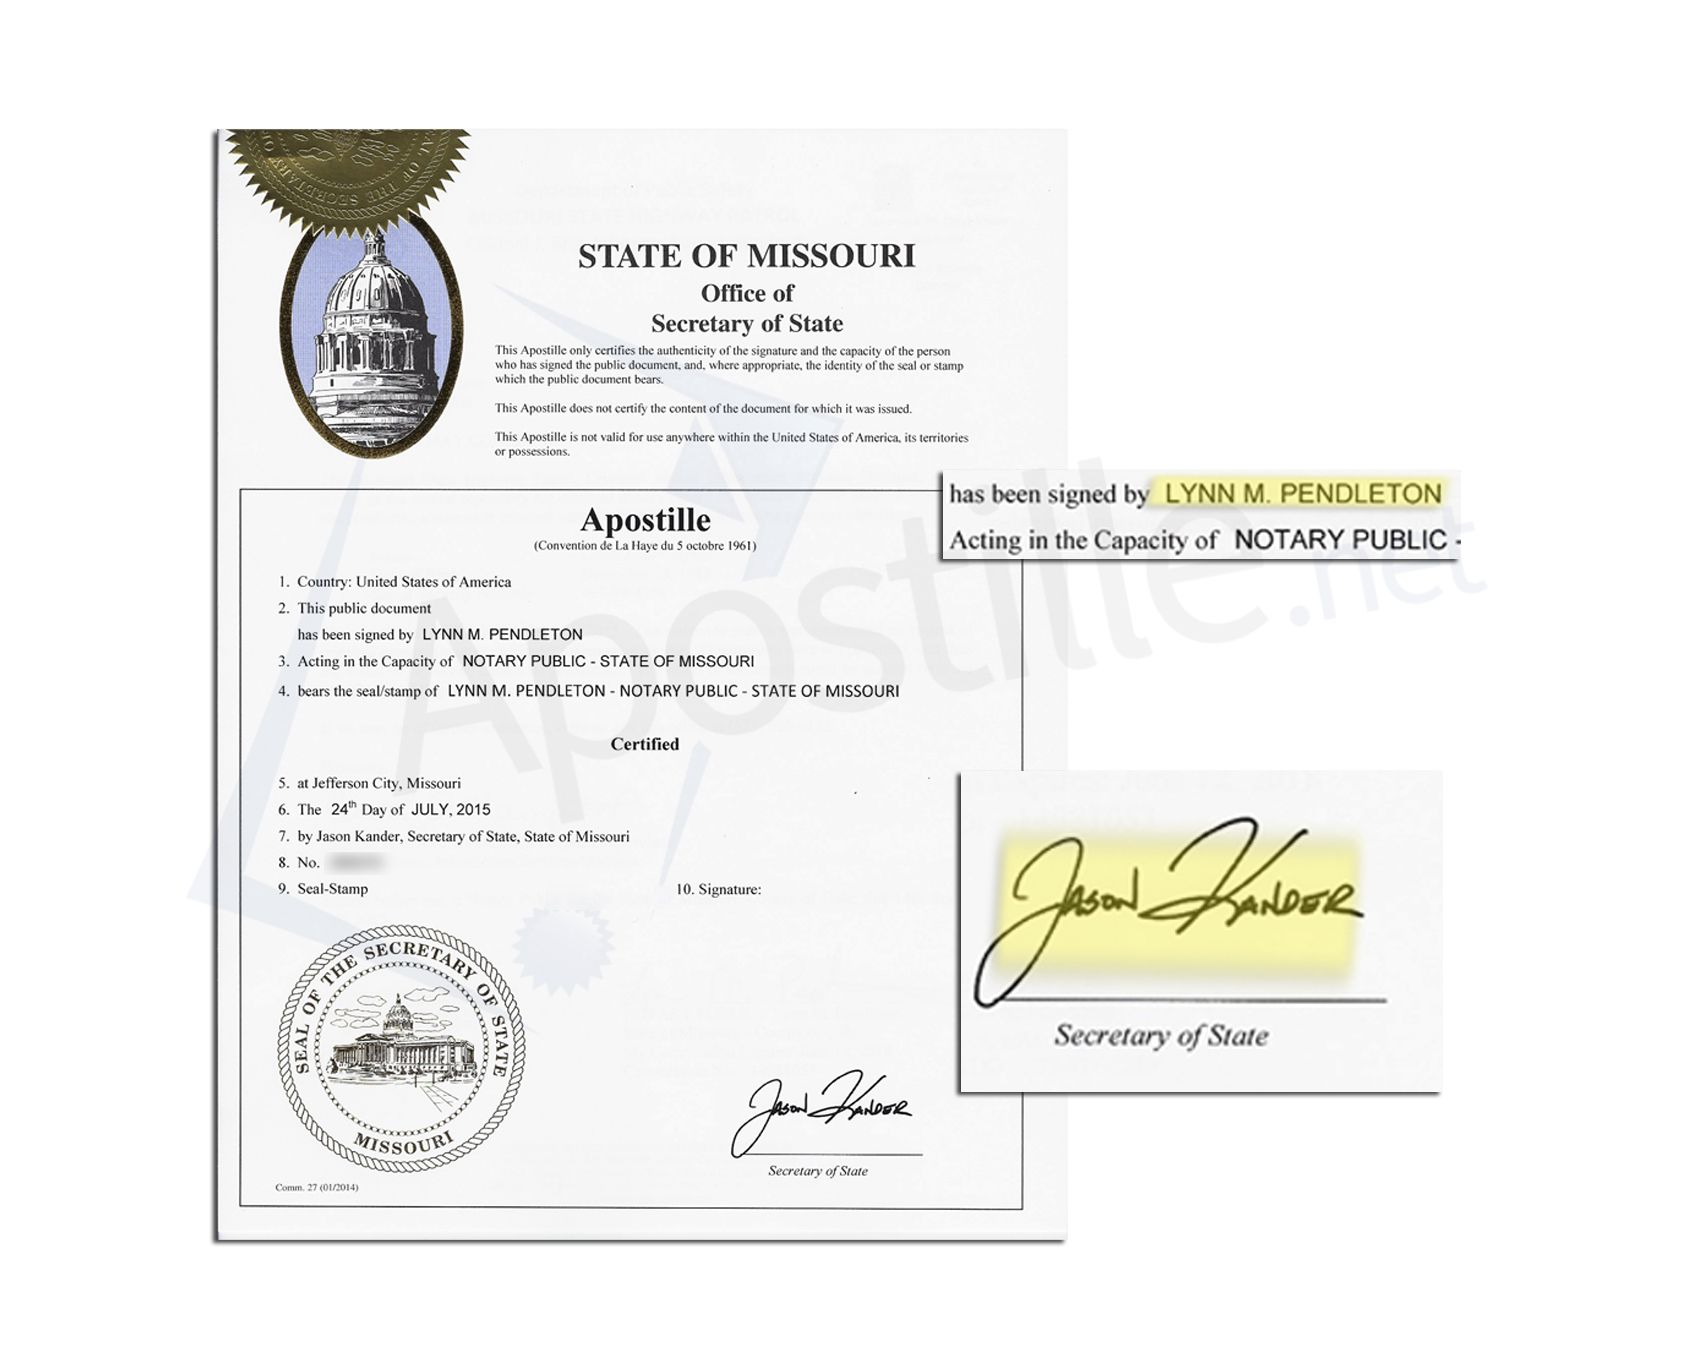 Apostille Issued By Jason Kander State Of Missouri Secretary Of State Of A  Document Signed By